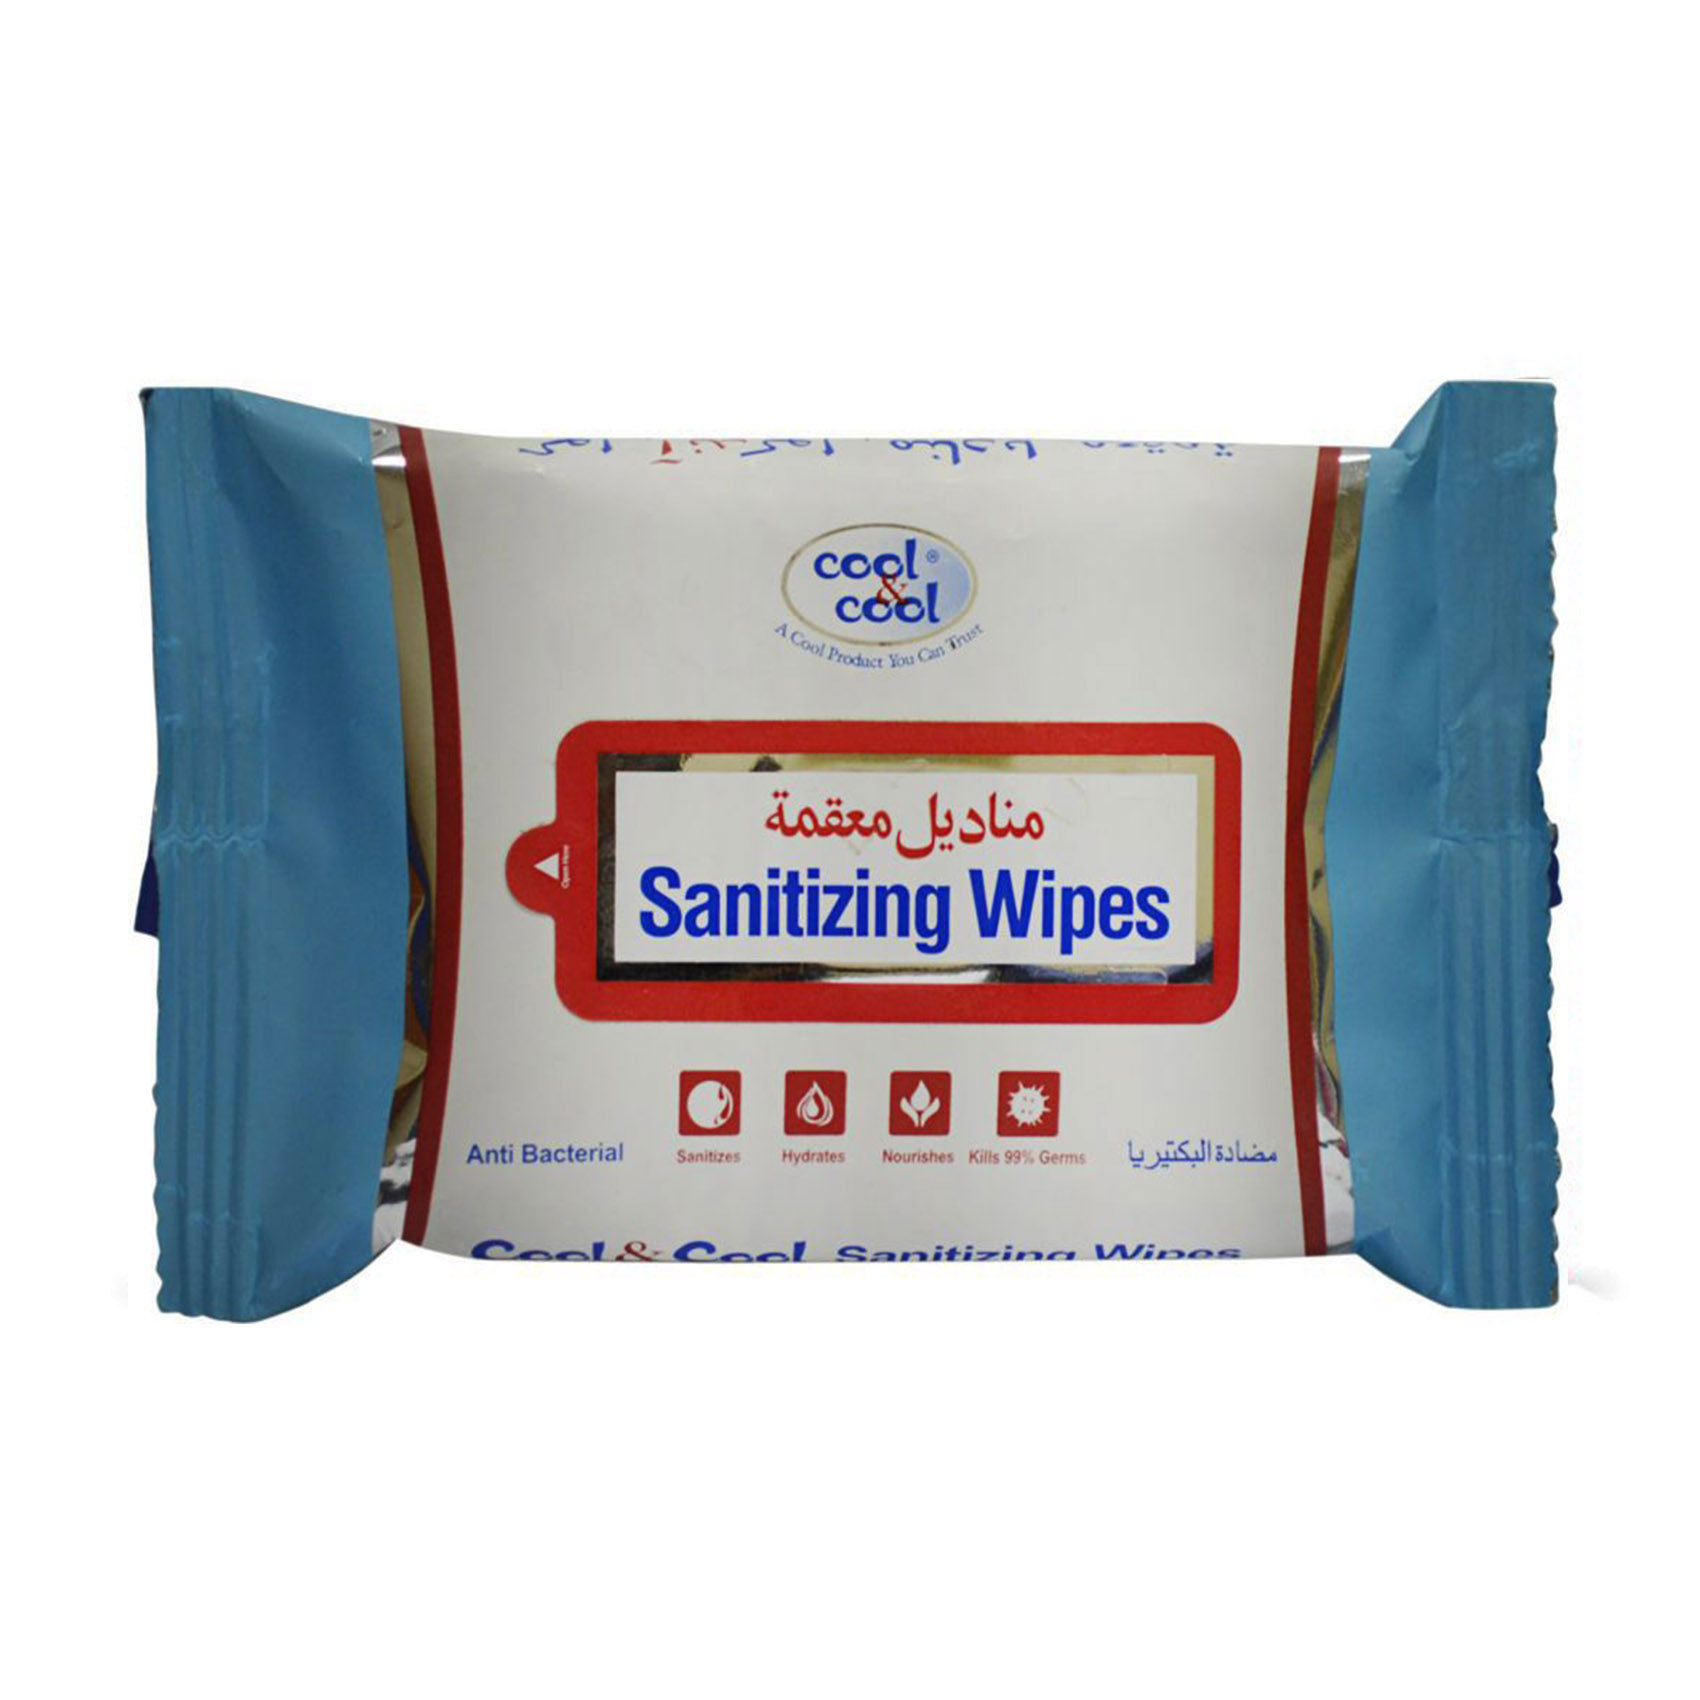 COOL&COOL - SANITIZING WIPES 15'S